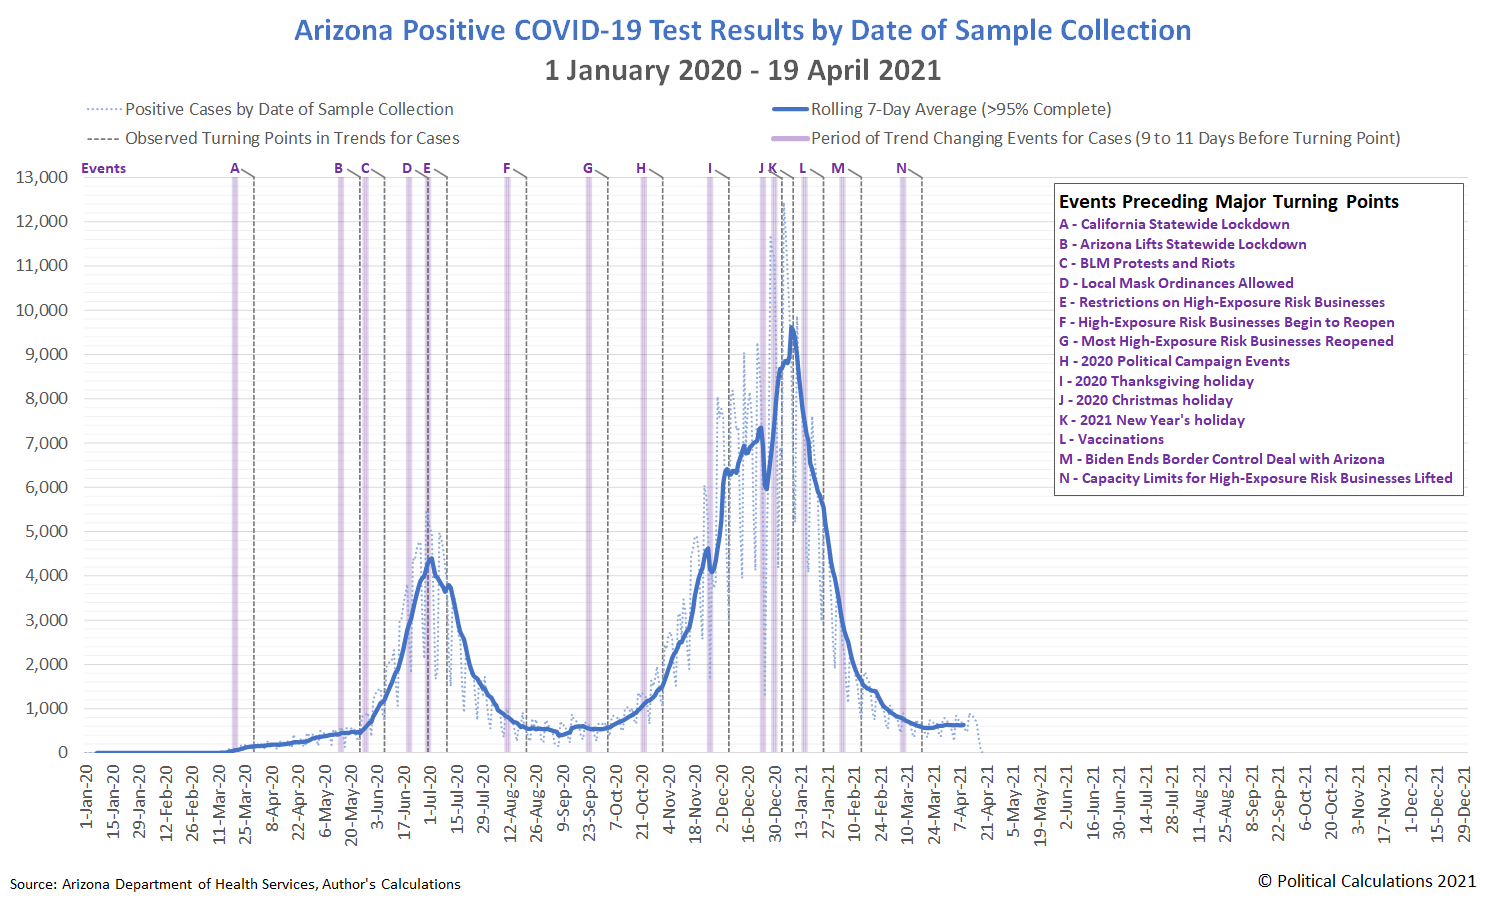 Arizona Positive COVID-19 Test Results by Date of Sample Collection, 1 January 2020 - 19 April 2021